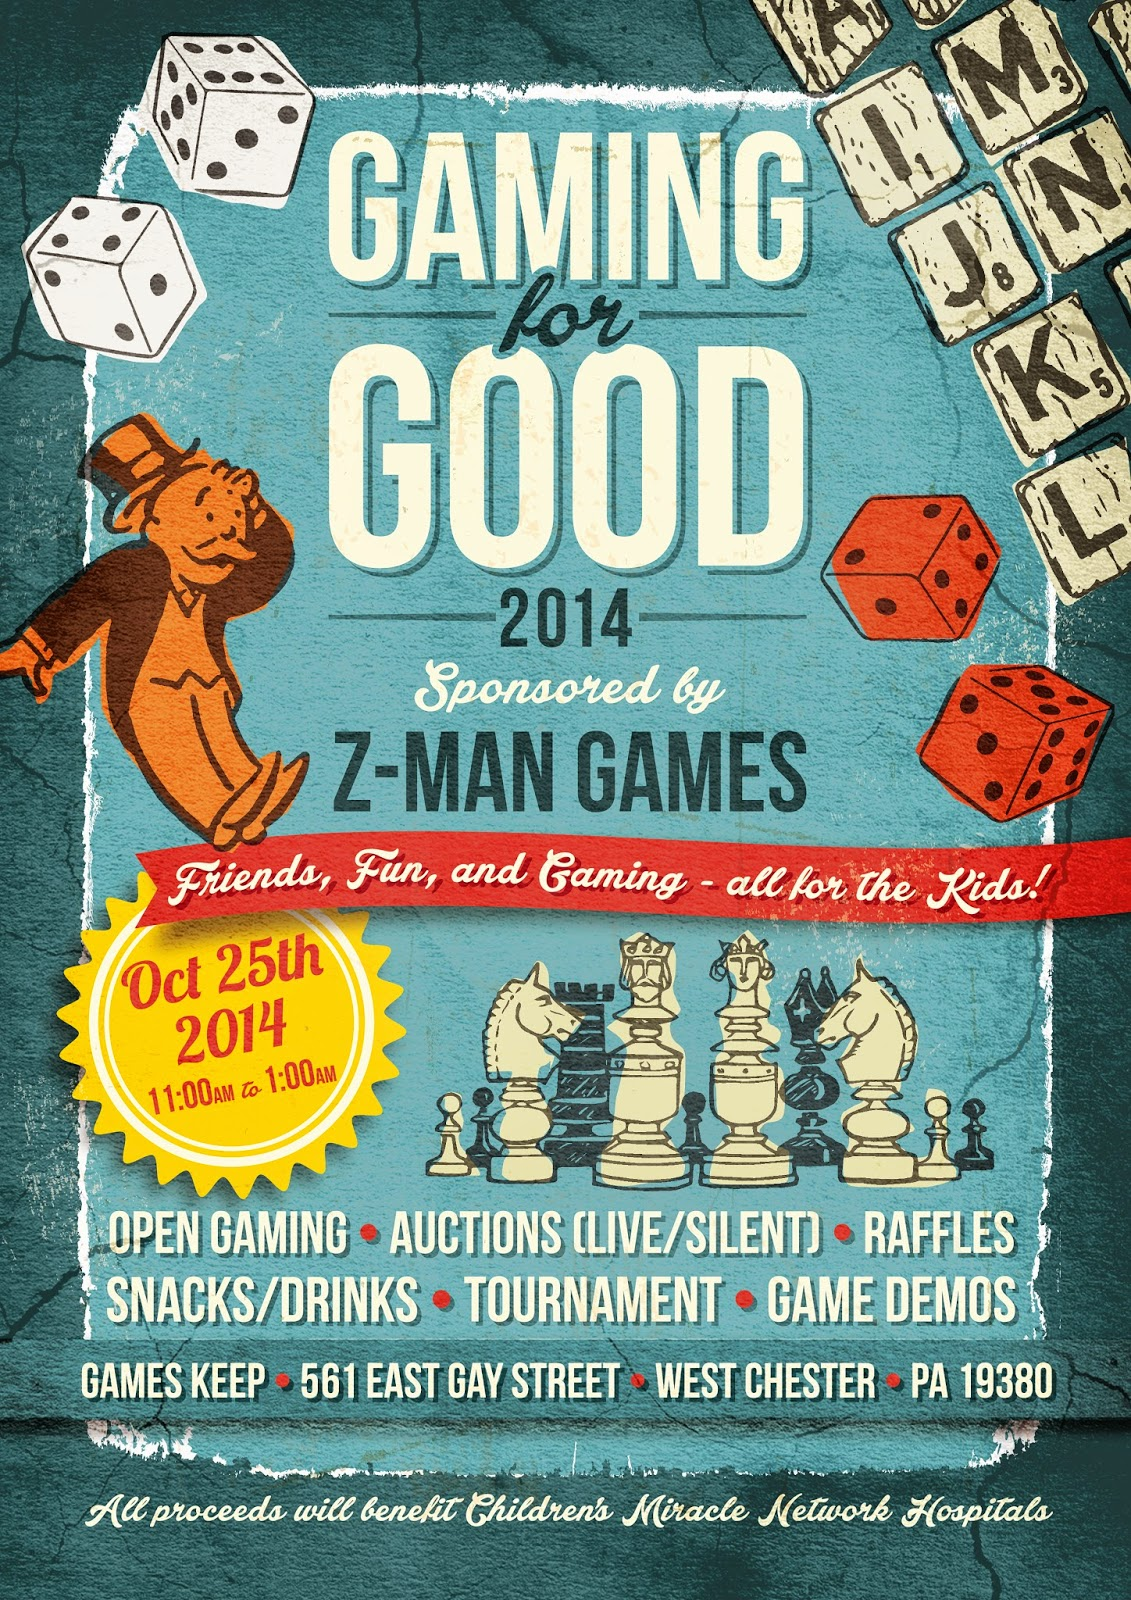 Extra Life Charity Event Announcement - Gaming for Good 2014